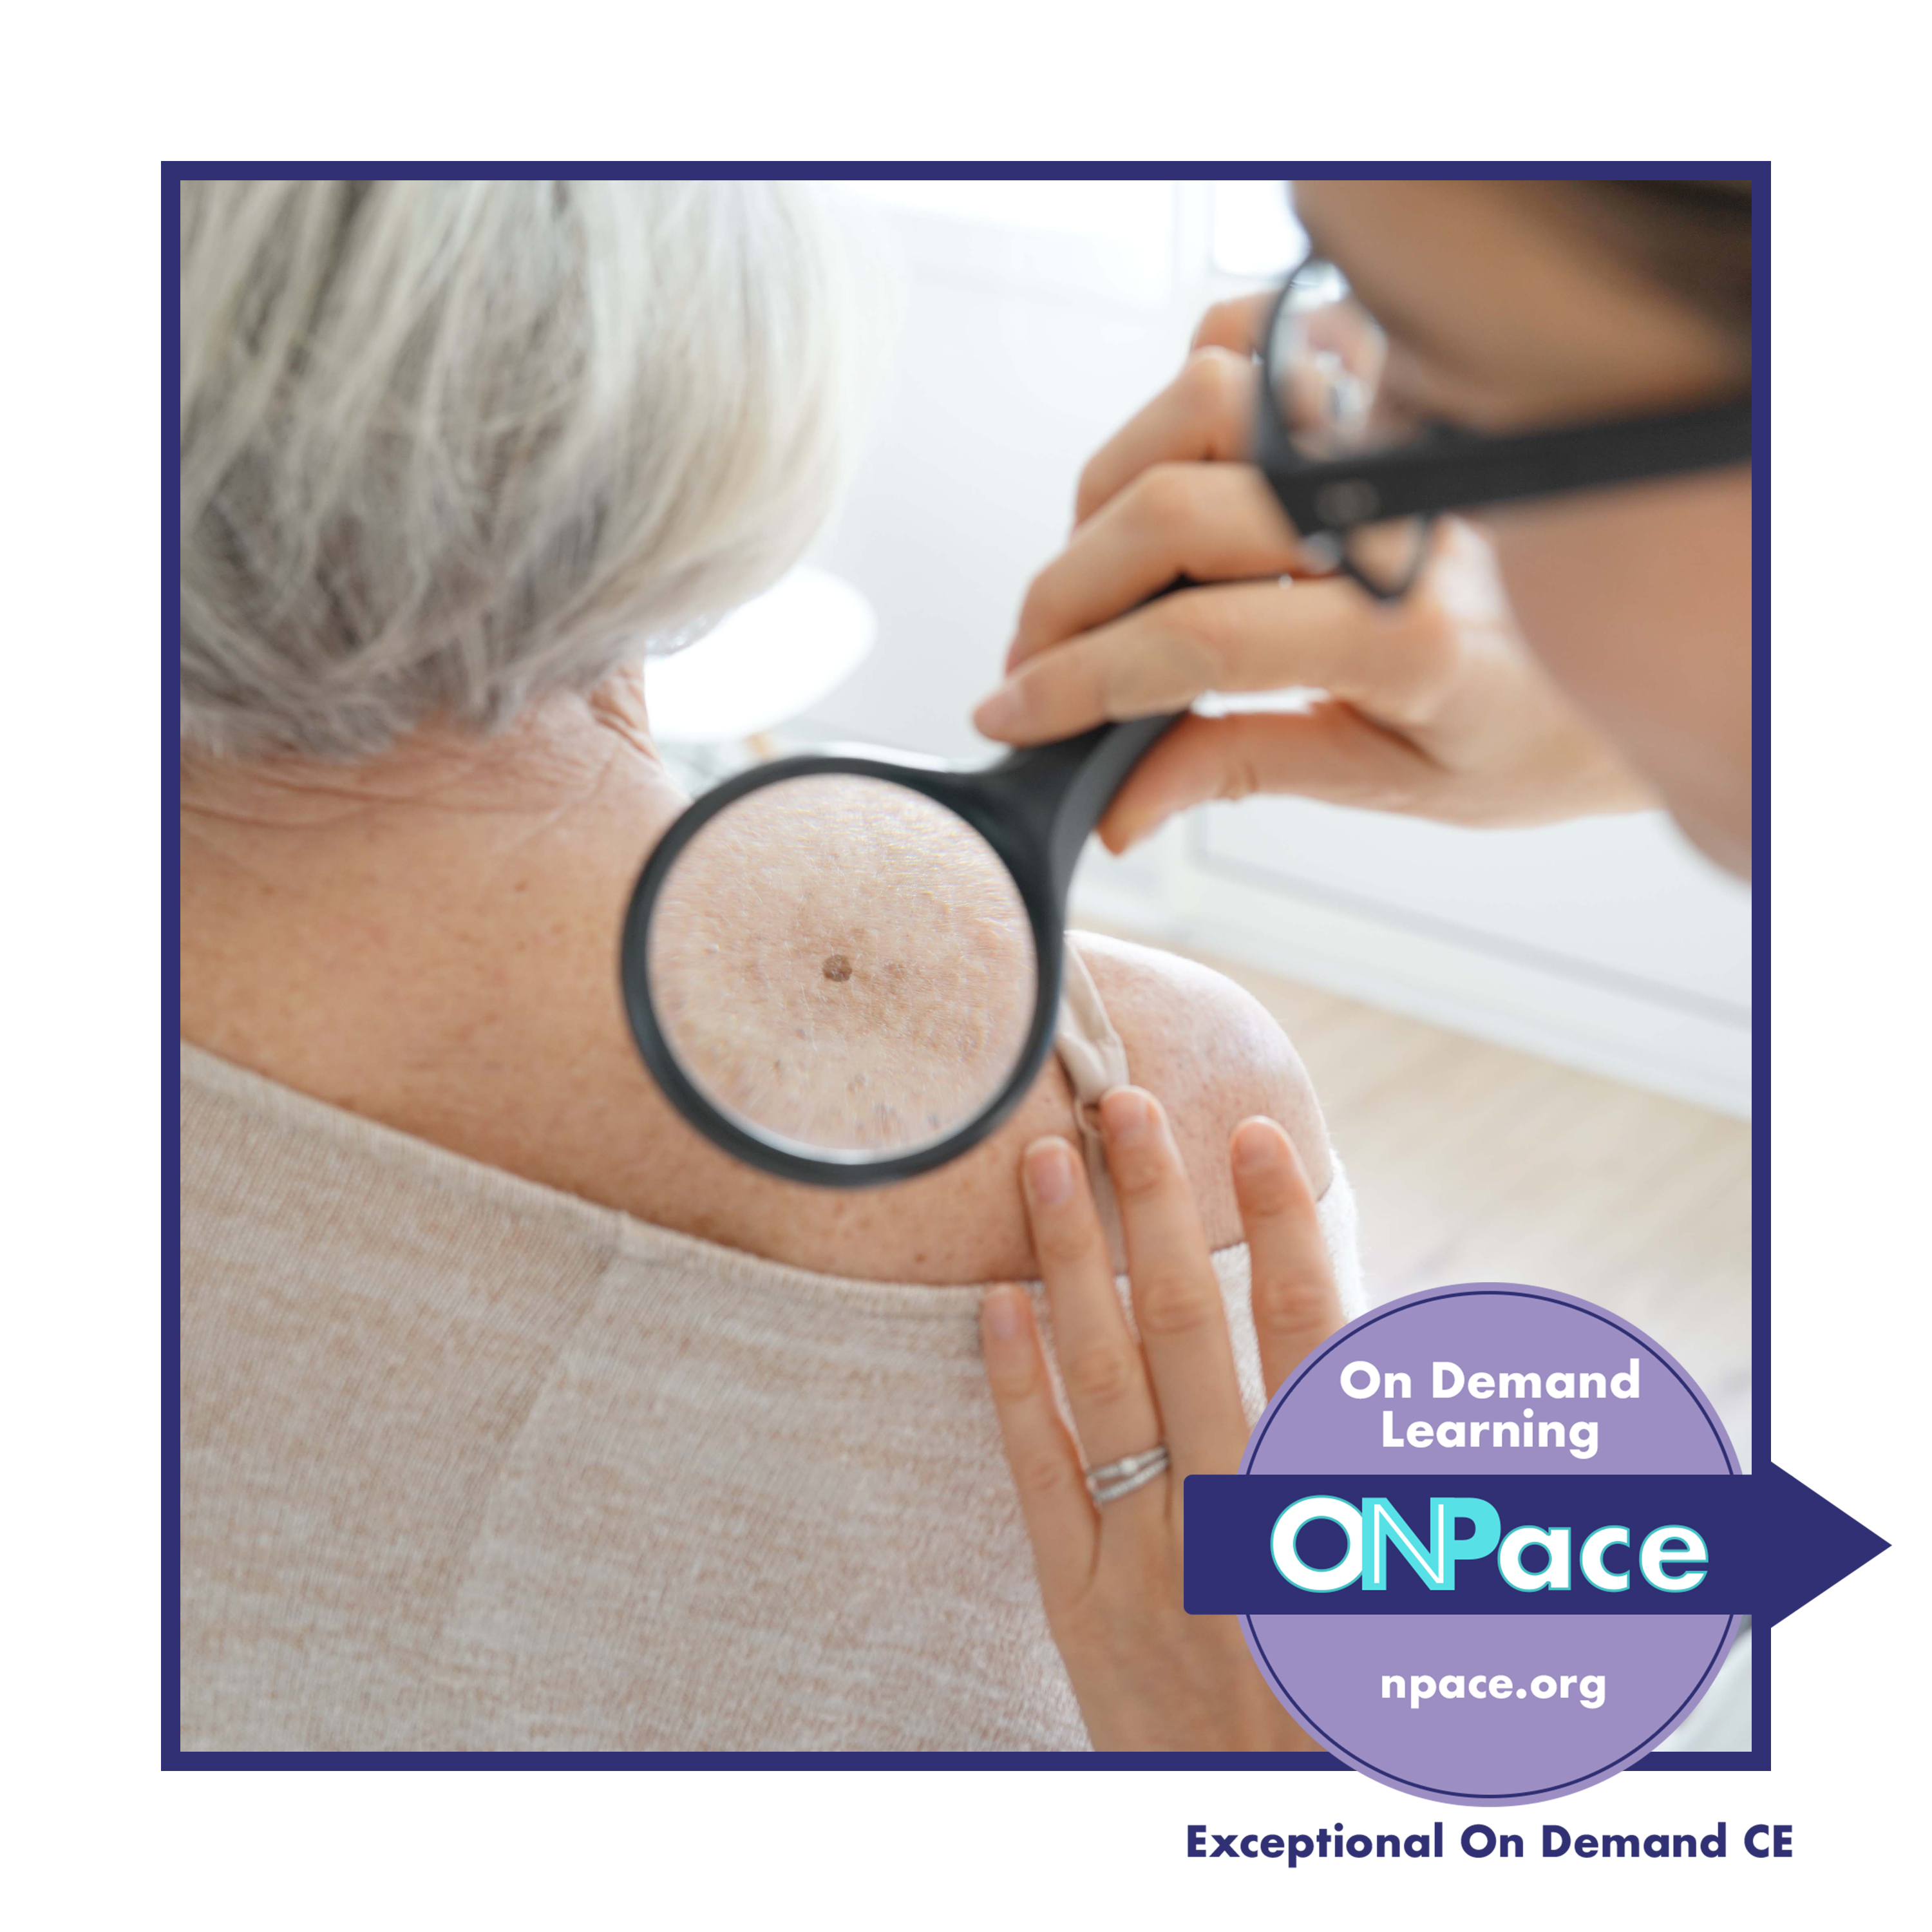 NPACE Common Dermatologic Disorders and How to Manage Them